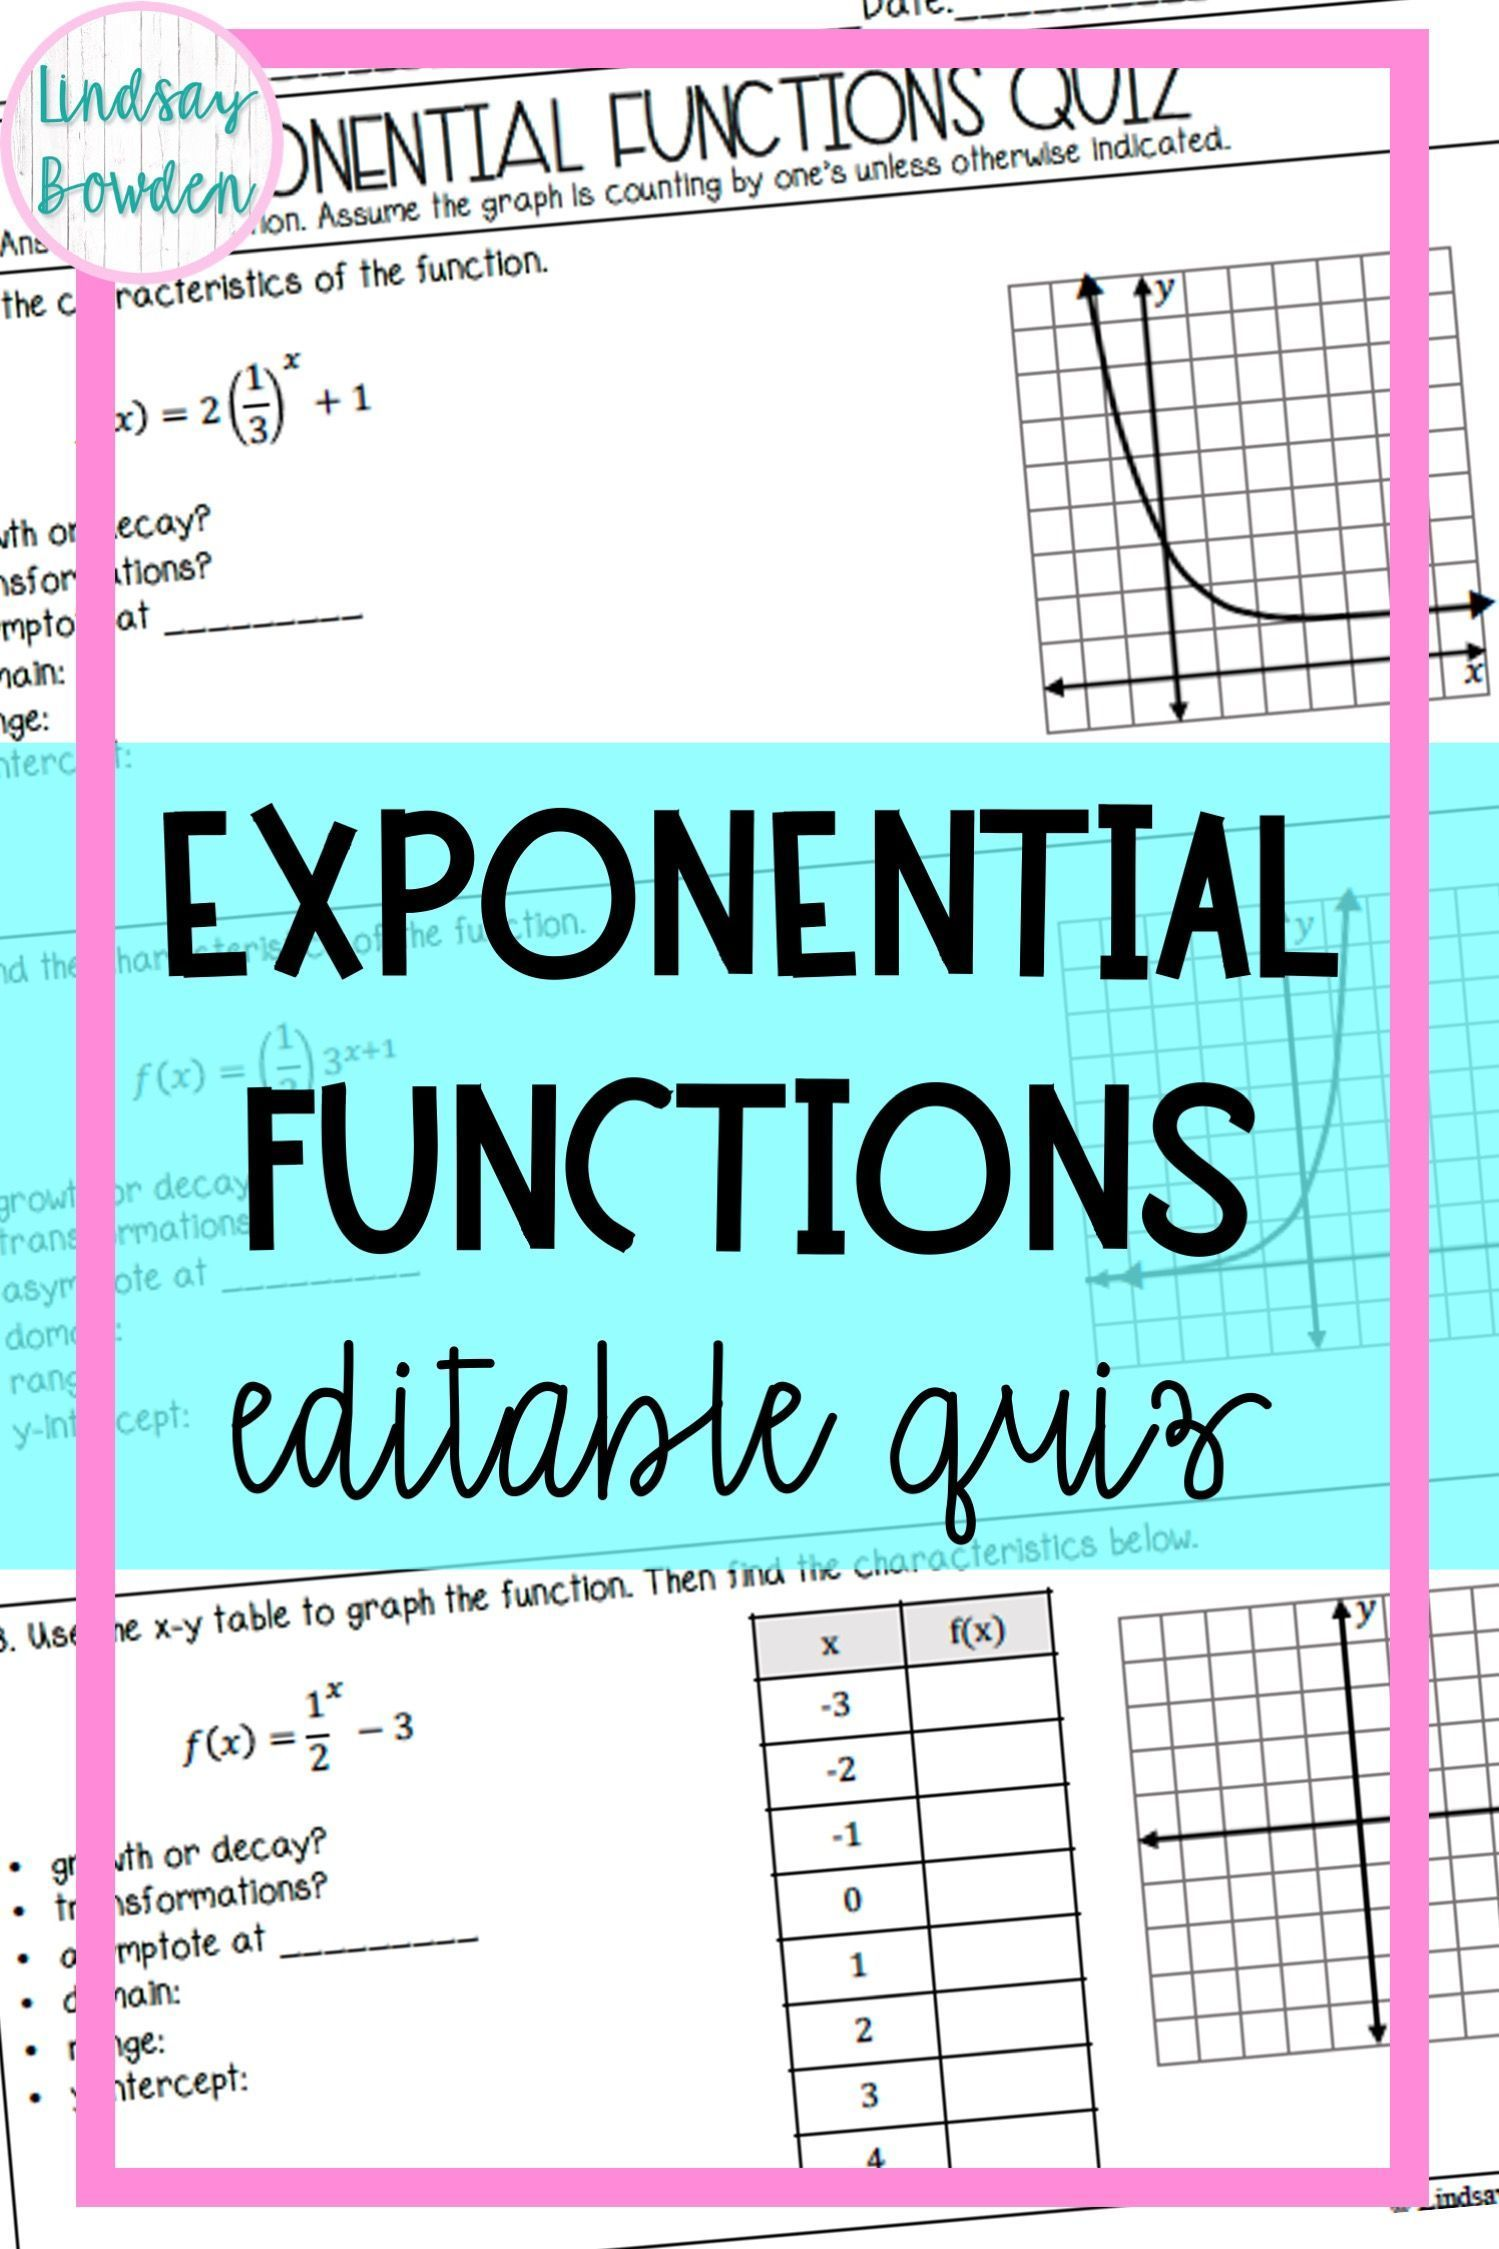 Exponential Functions Quiz Middle School Math Resources Free Math Lessons Exponential